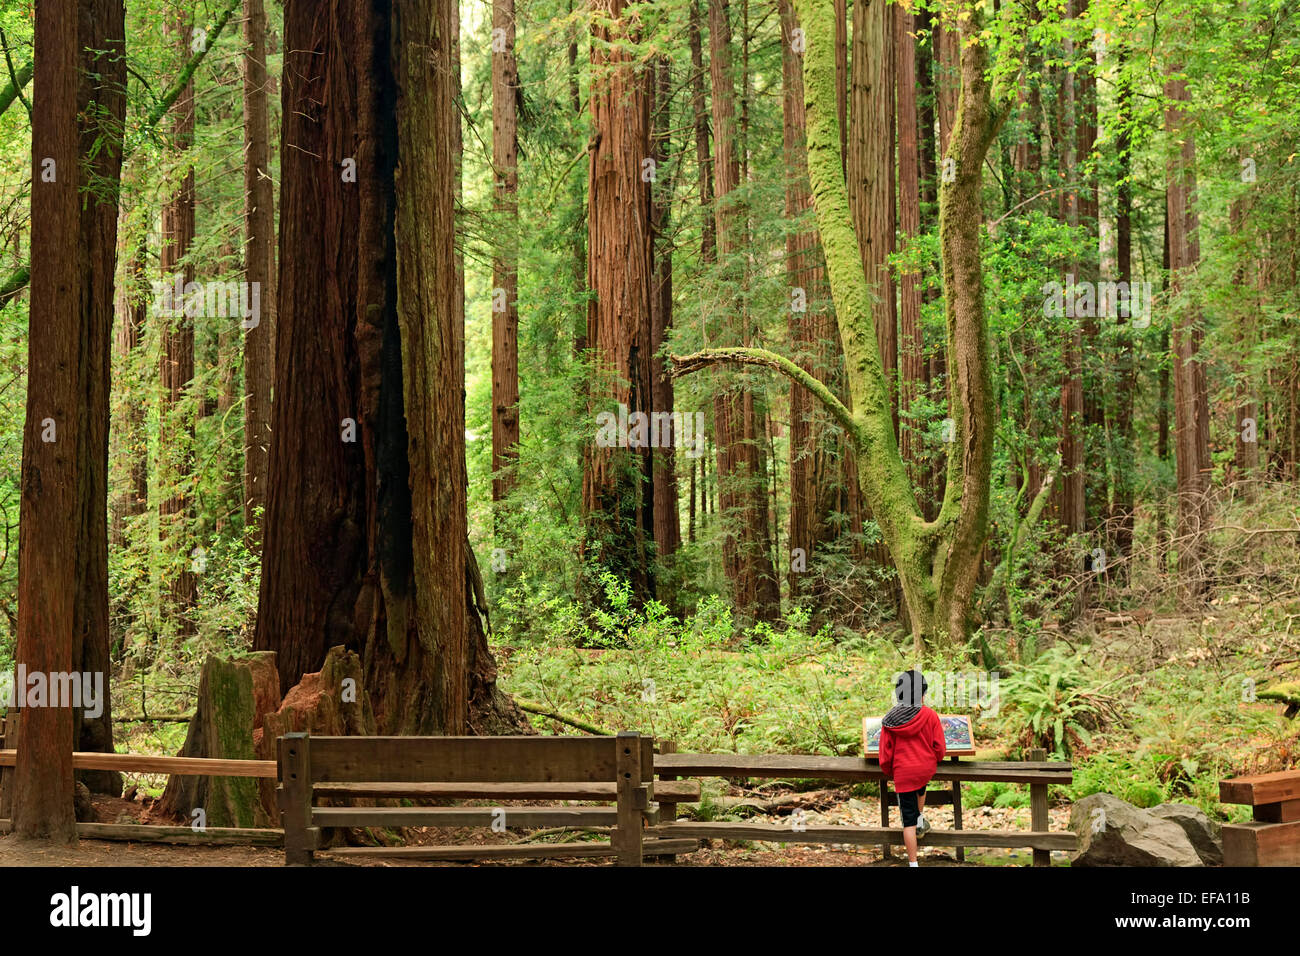 Child admiring redwood forest, Muir Woods National Monument, California USA - Stock Image